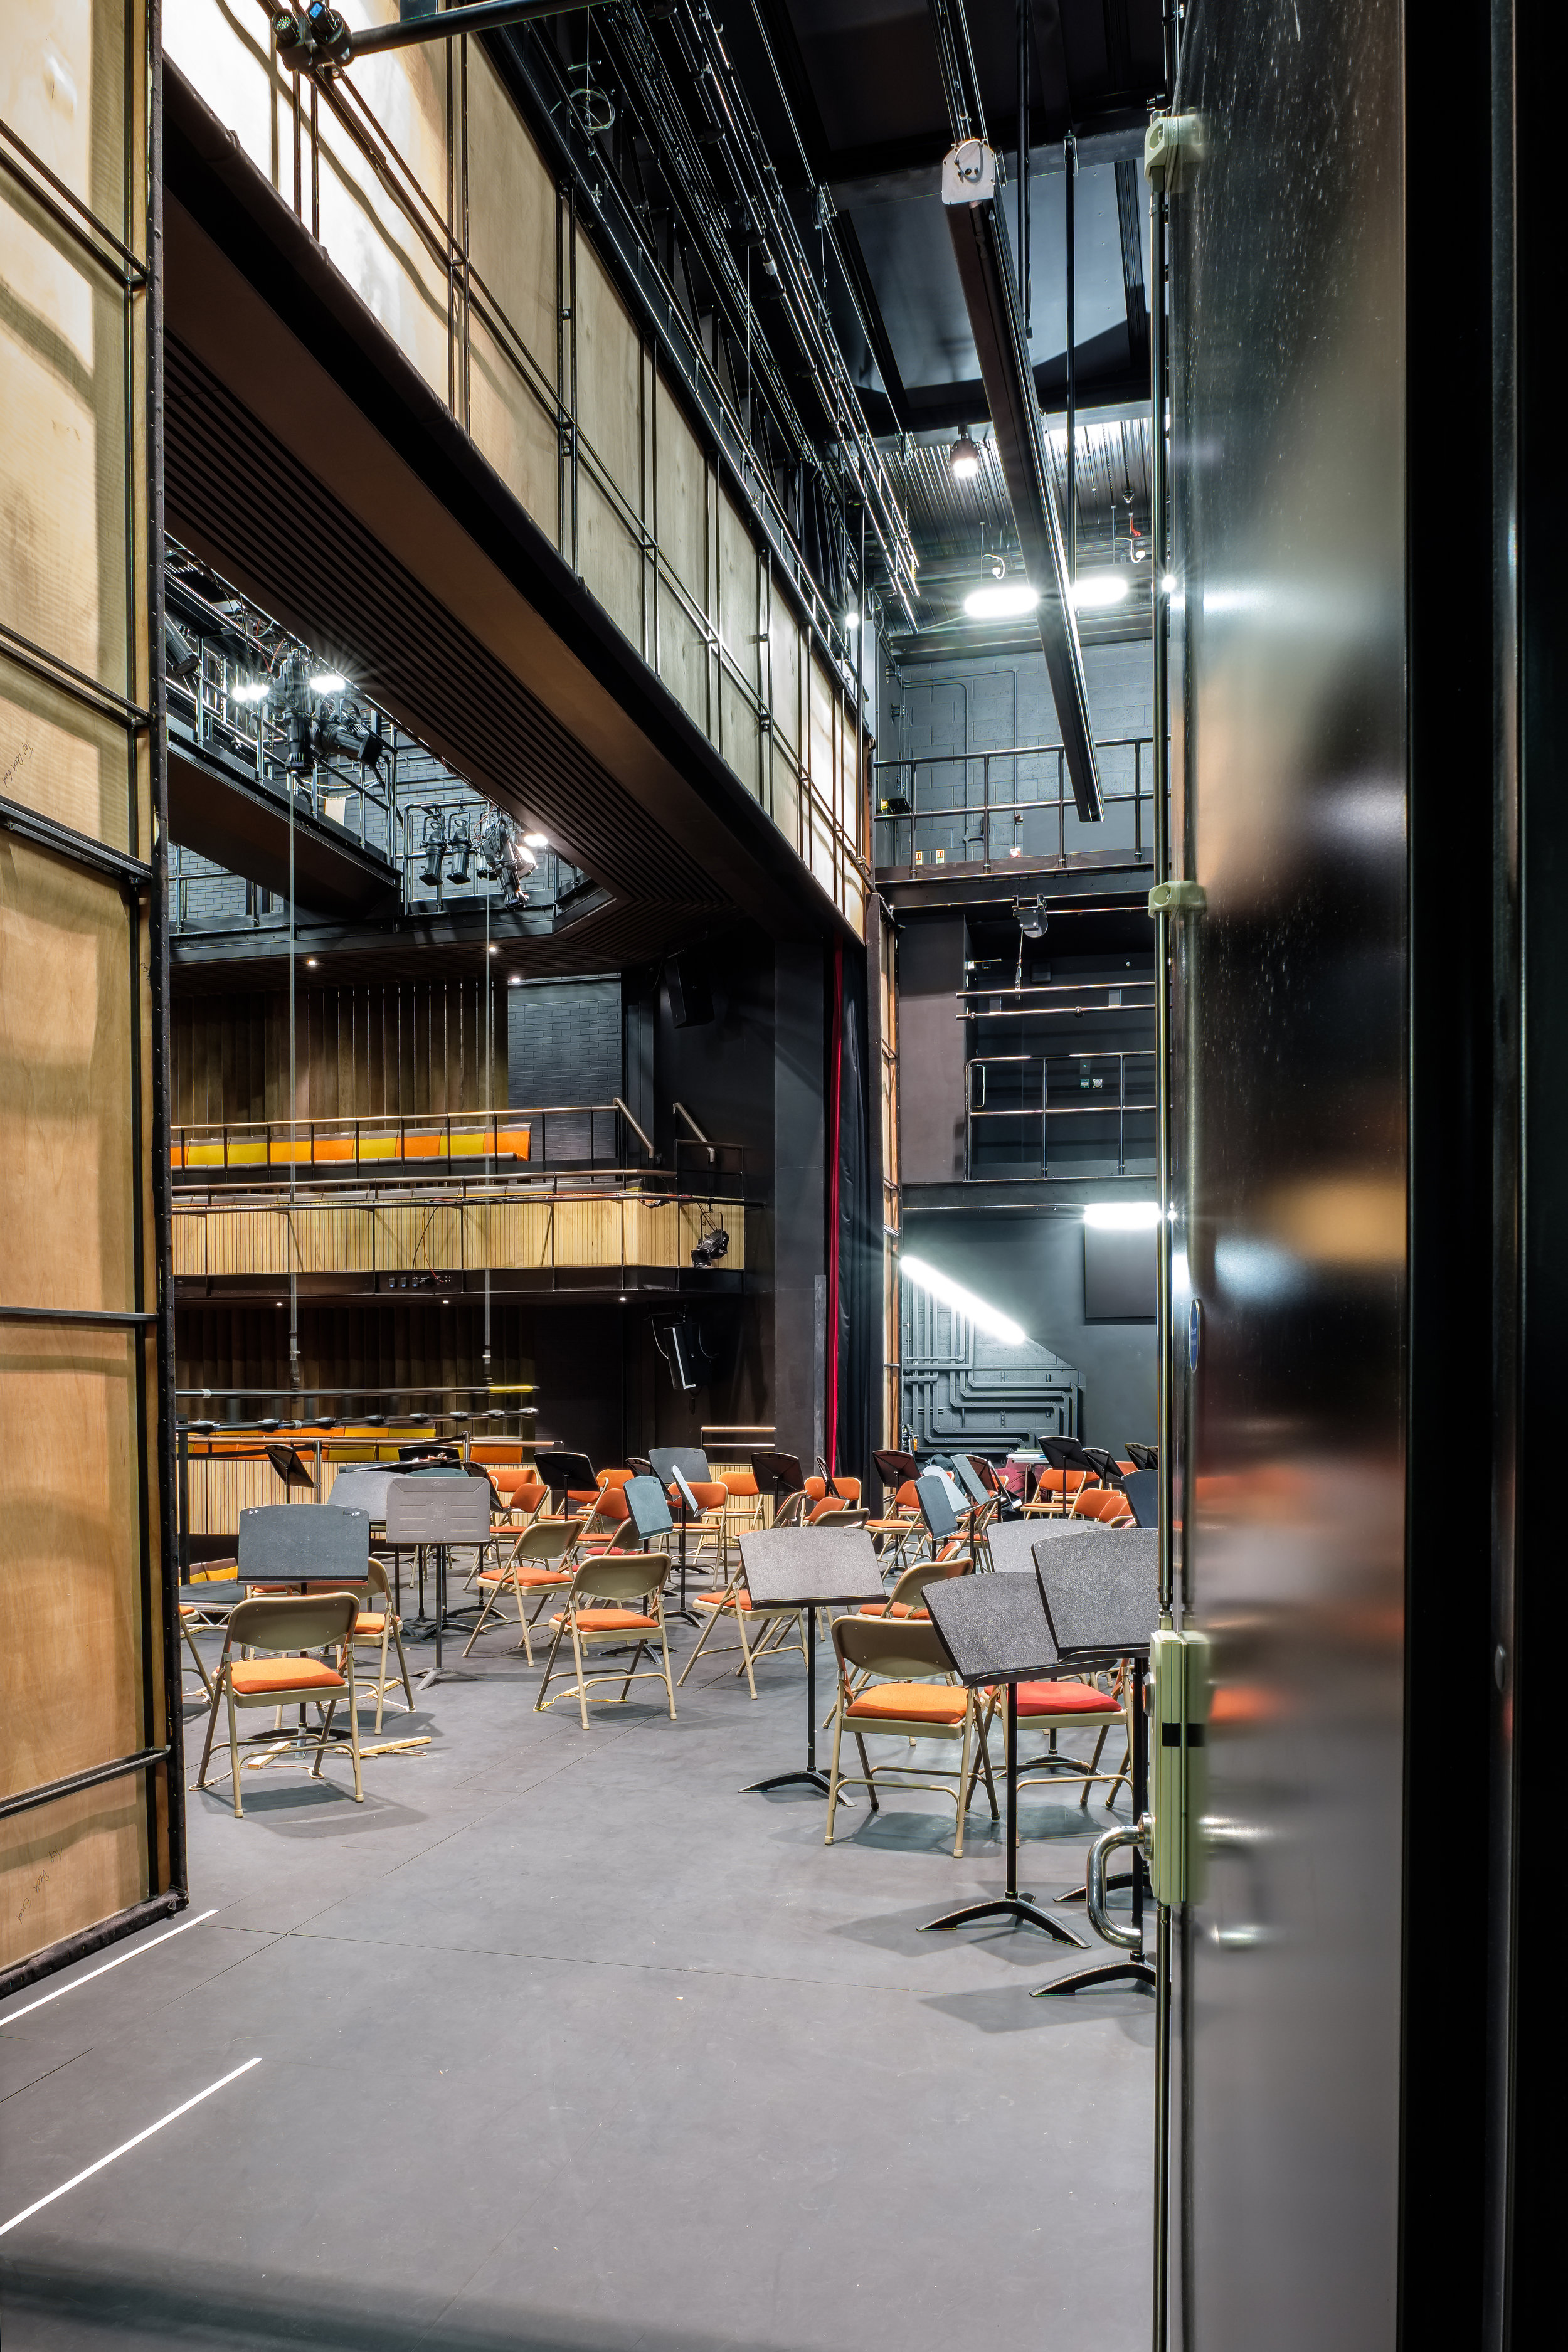 Fred+Howarth+Photography_Perse+Schol+Performing+Arts+Centre_01.jpg